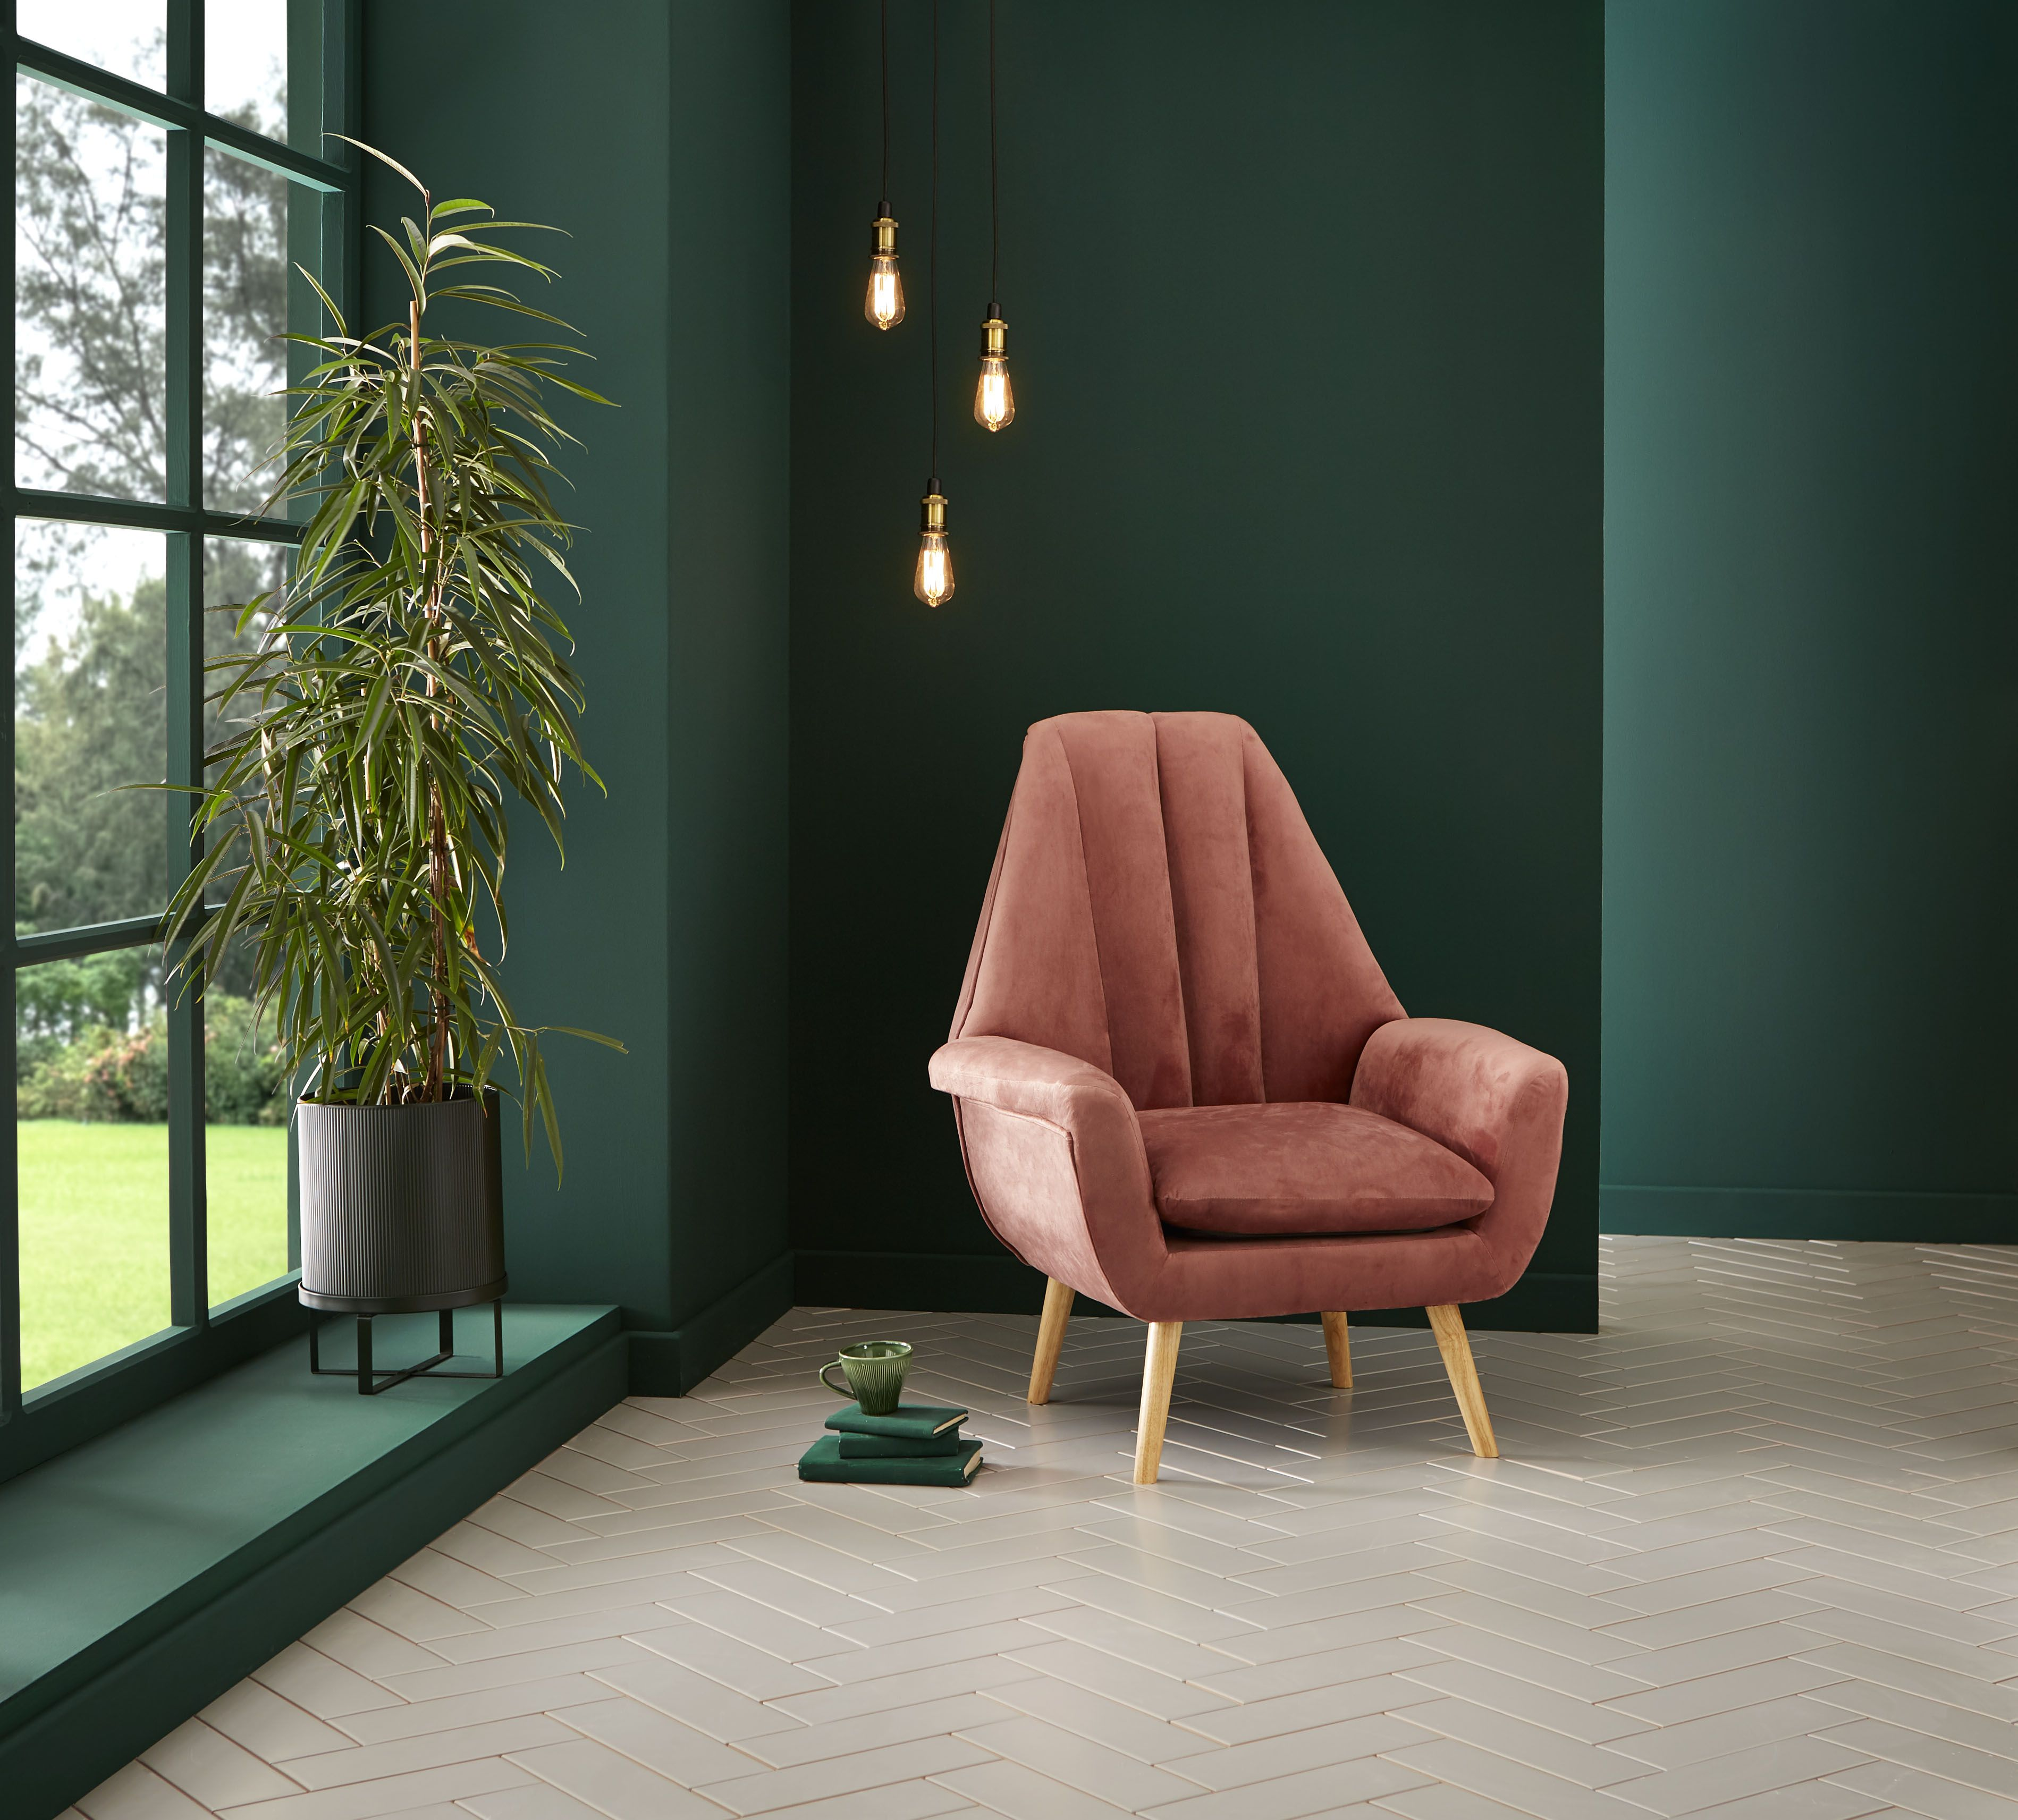 Dark green 'Adeline' is Graham & Brown's Colour of the Year for 2020